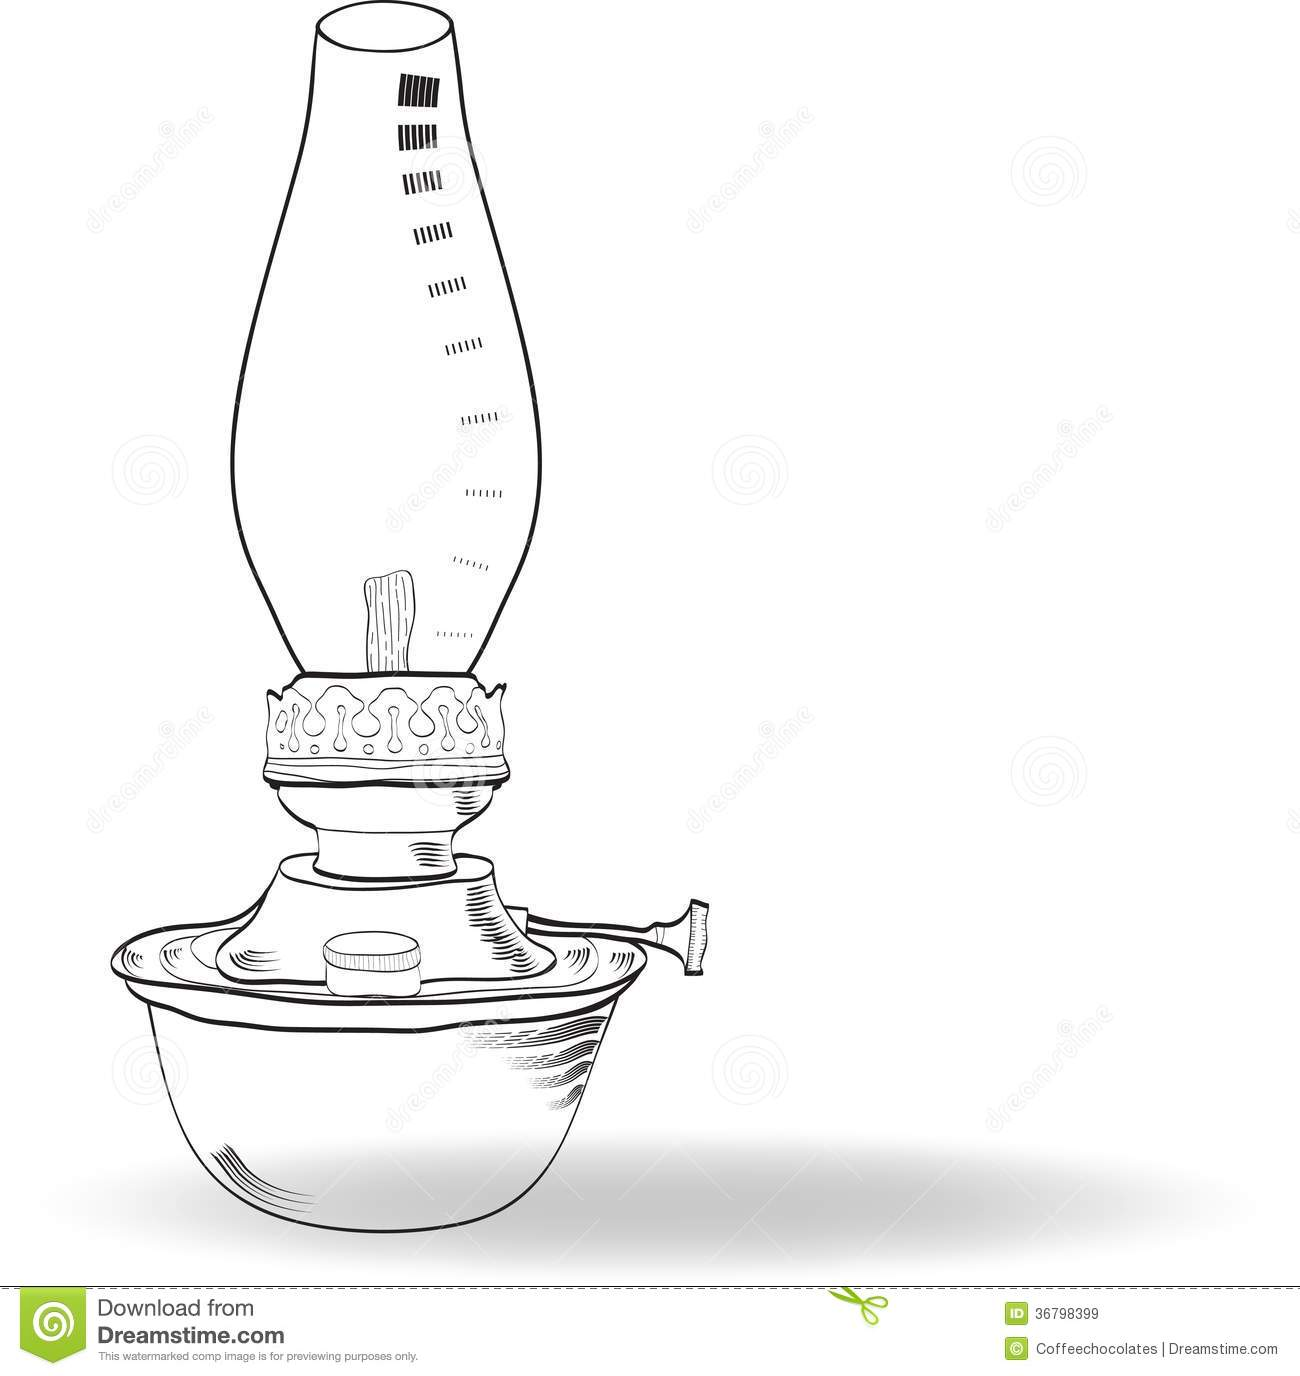 Sketch Of Vintage Oil Lamp, Vector Stock Vector - Illustration of ... for Drawing Oil Lamp  300lyp